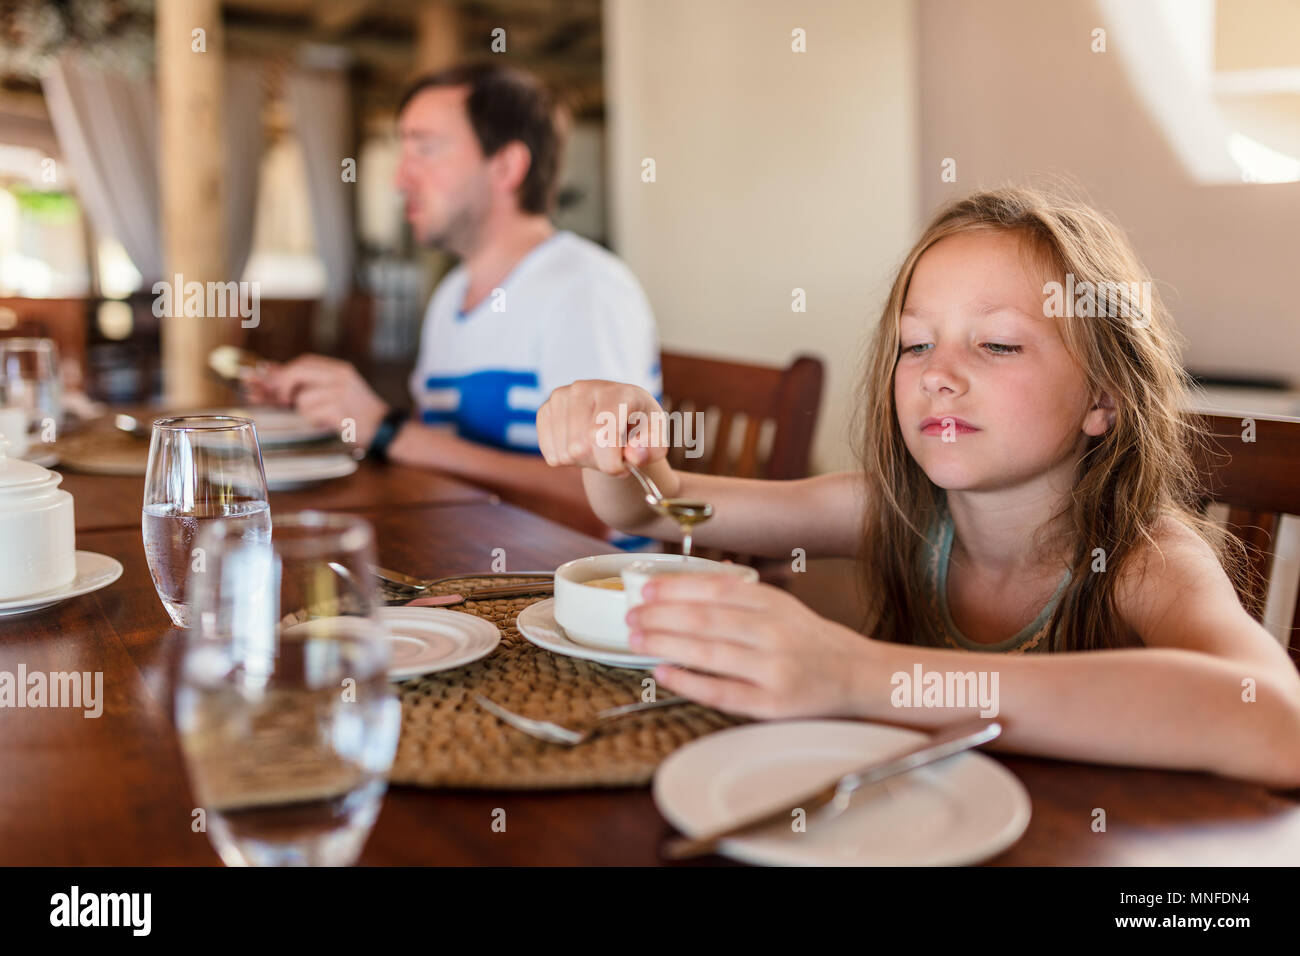 Adorable little girl eating breakfast in home or restaurant - Stock Image